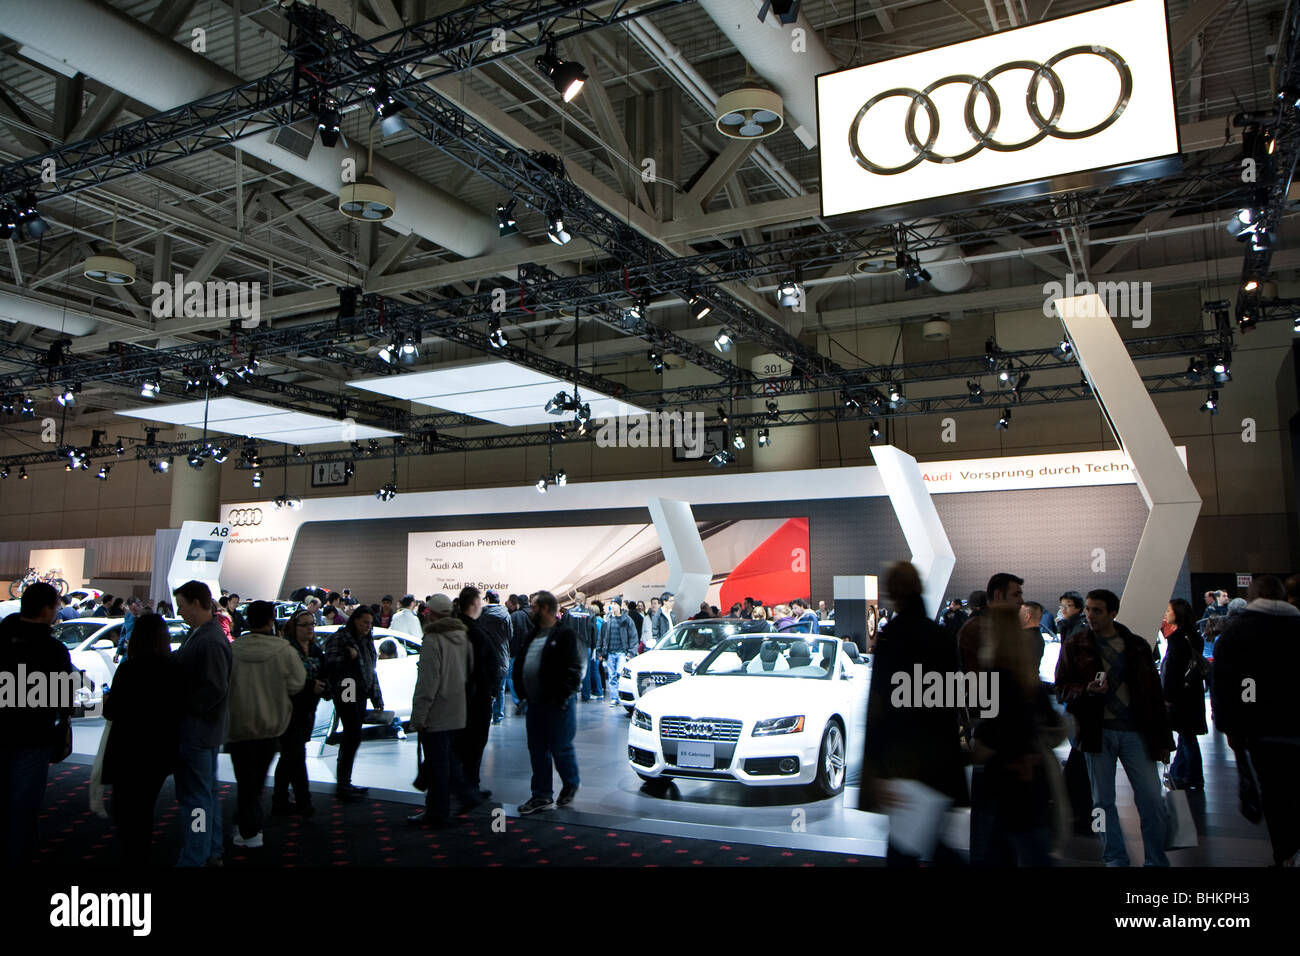 Audi autoshow crowd - Stock Image